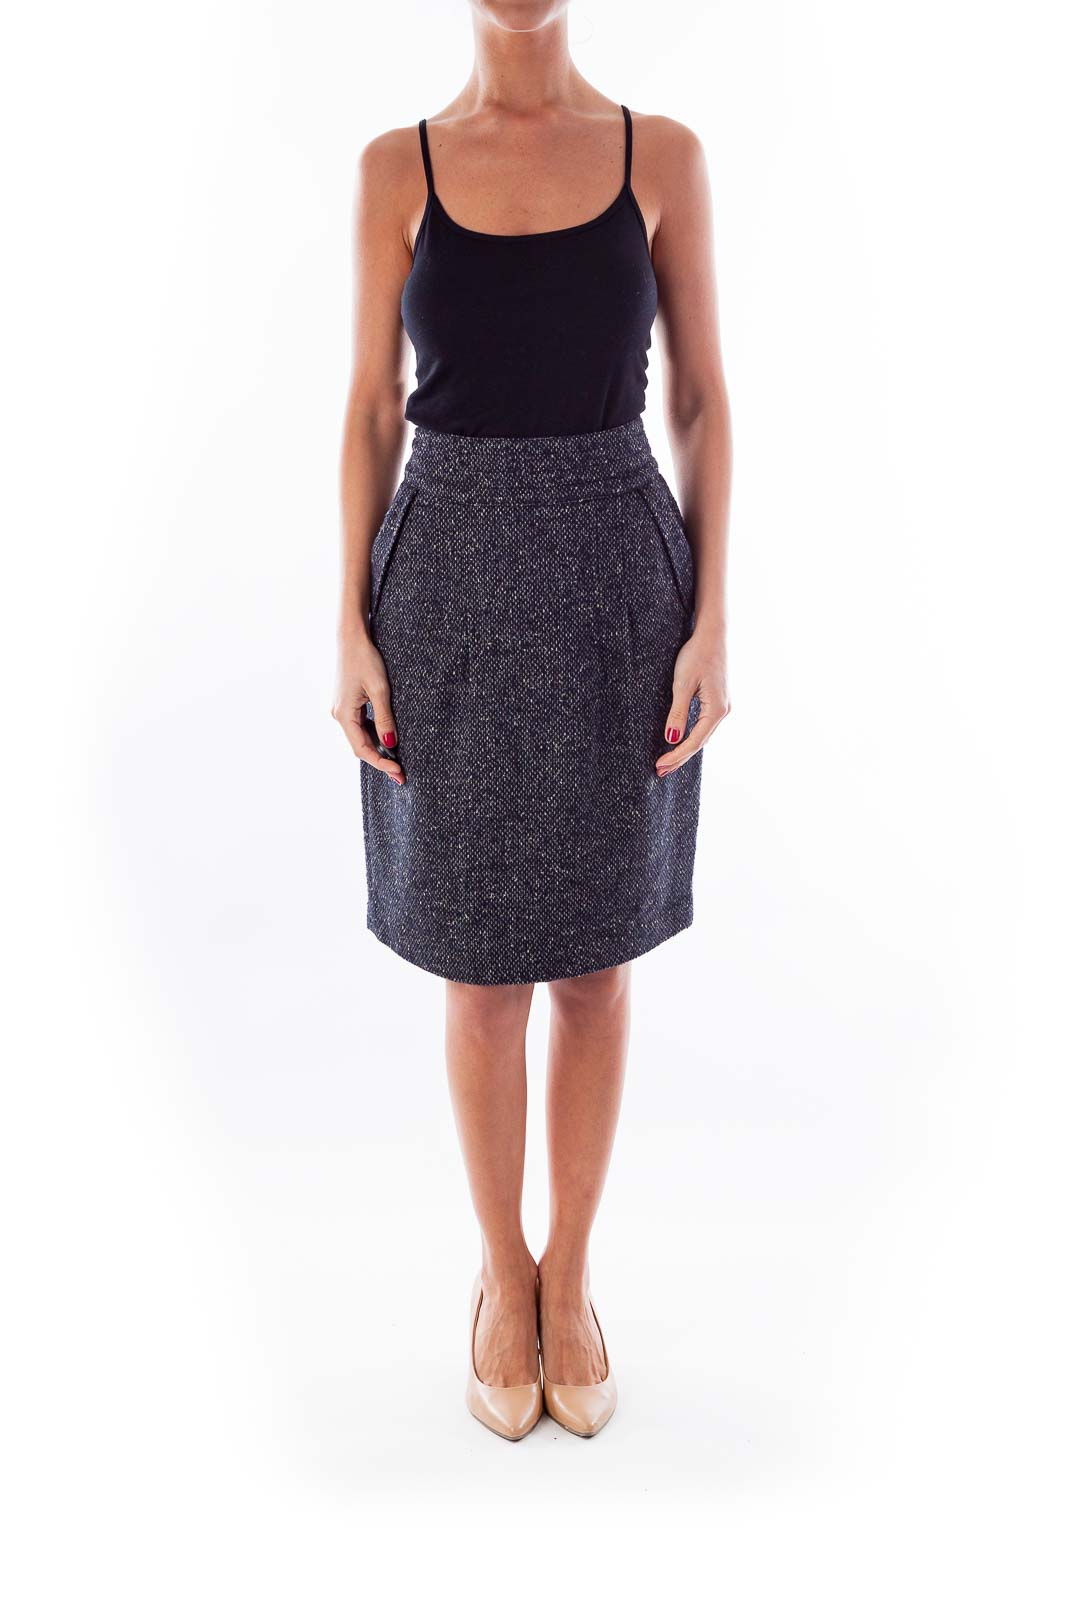 black white tweed pencil skirt 8 silkroll